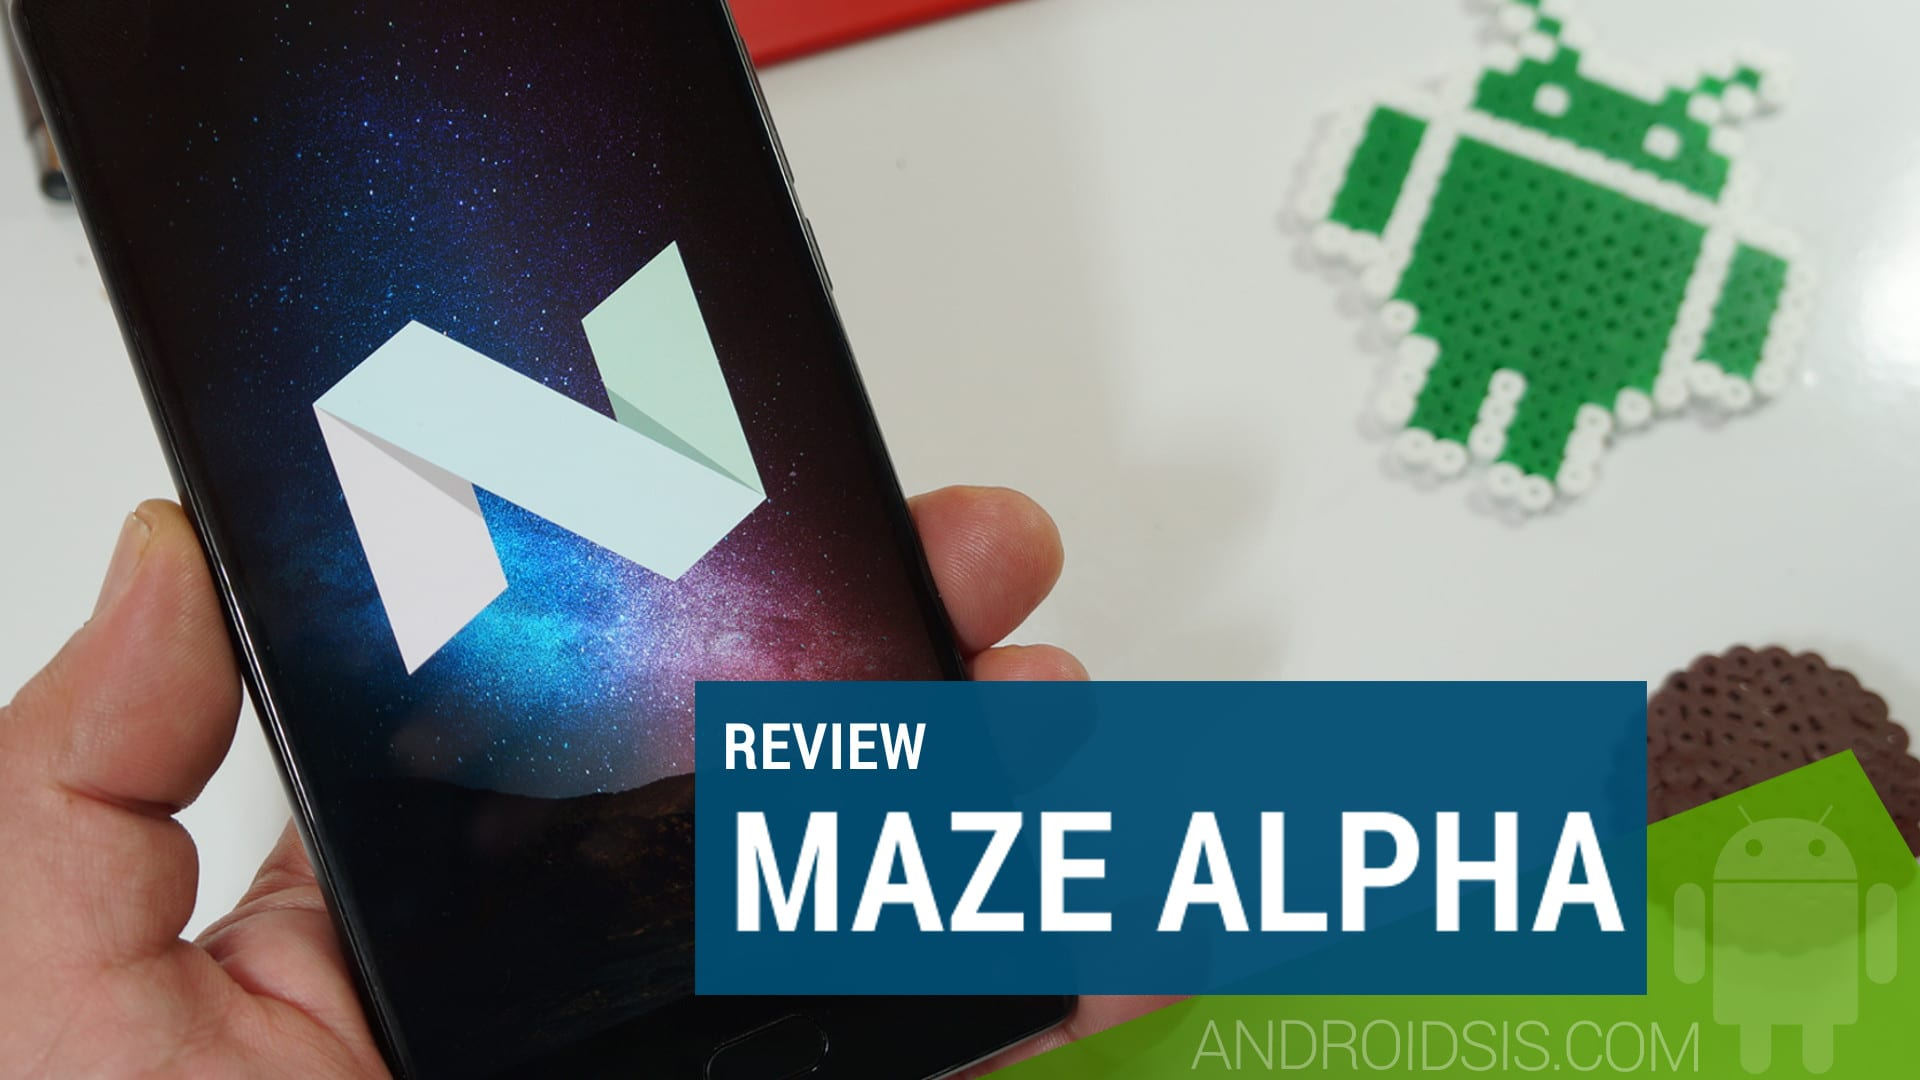 Review MAZE Alpha